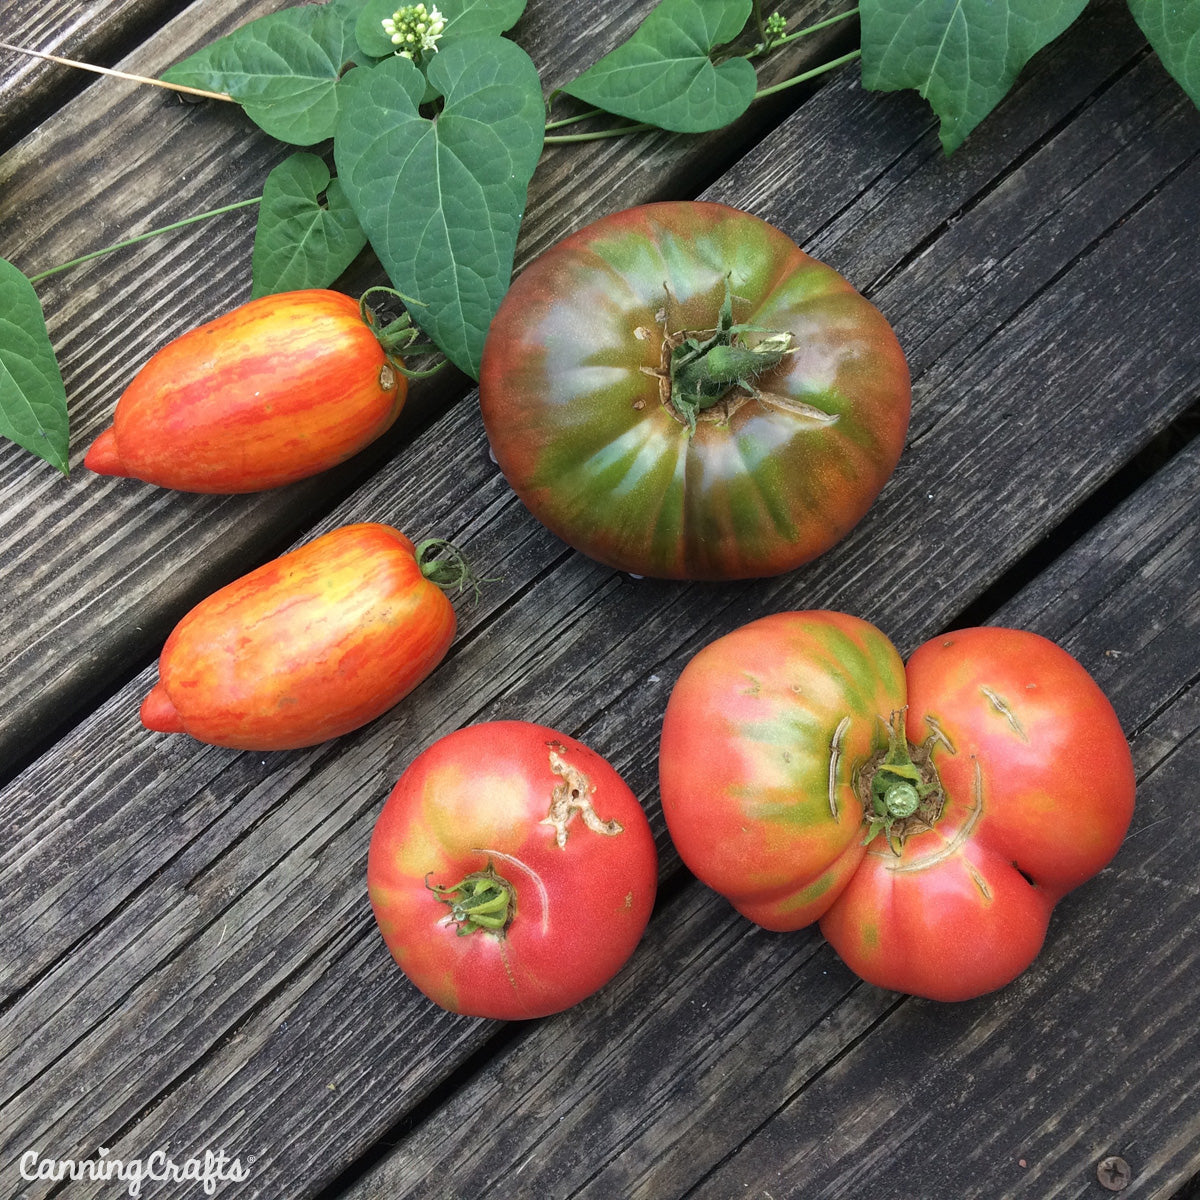 CanningCrafts.com Heirloom tomatoes Cherokee Purple, Mortgage Lifter, Romas